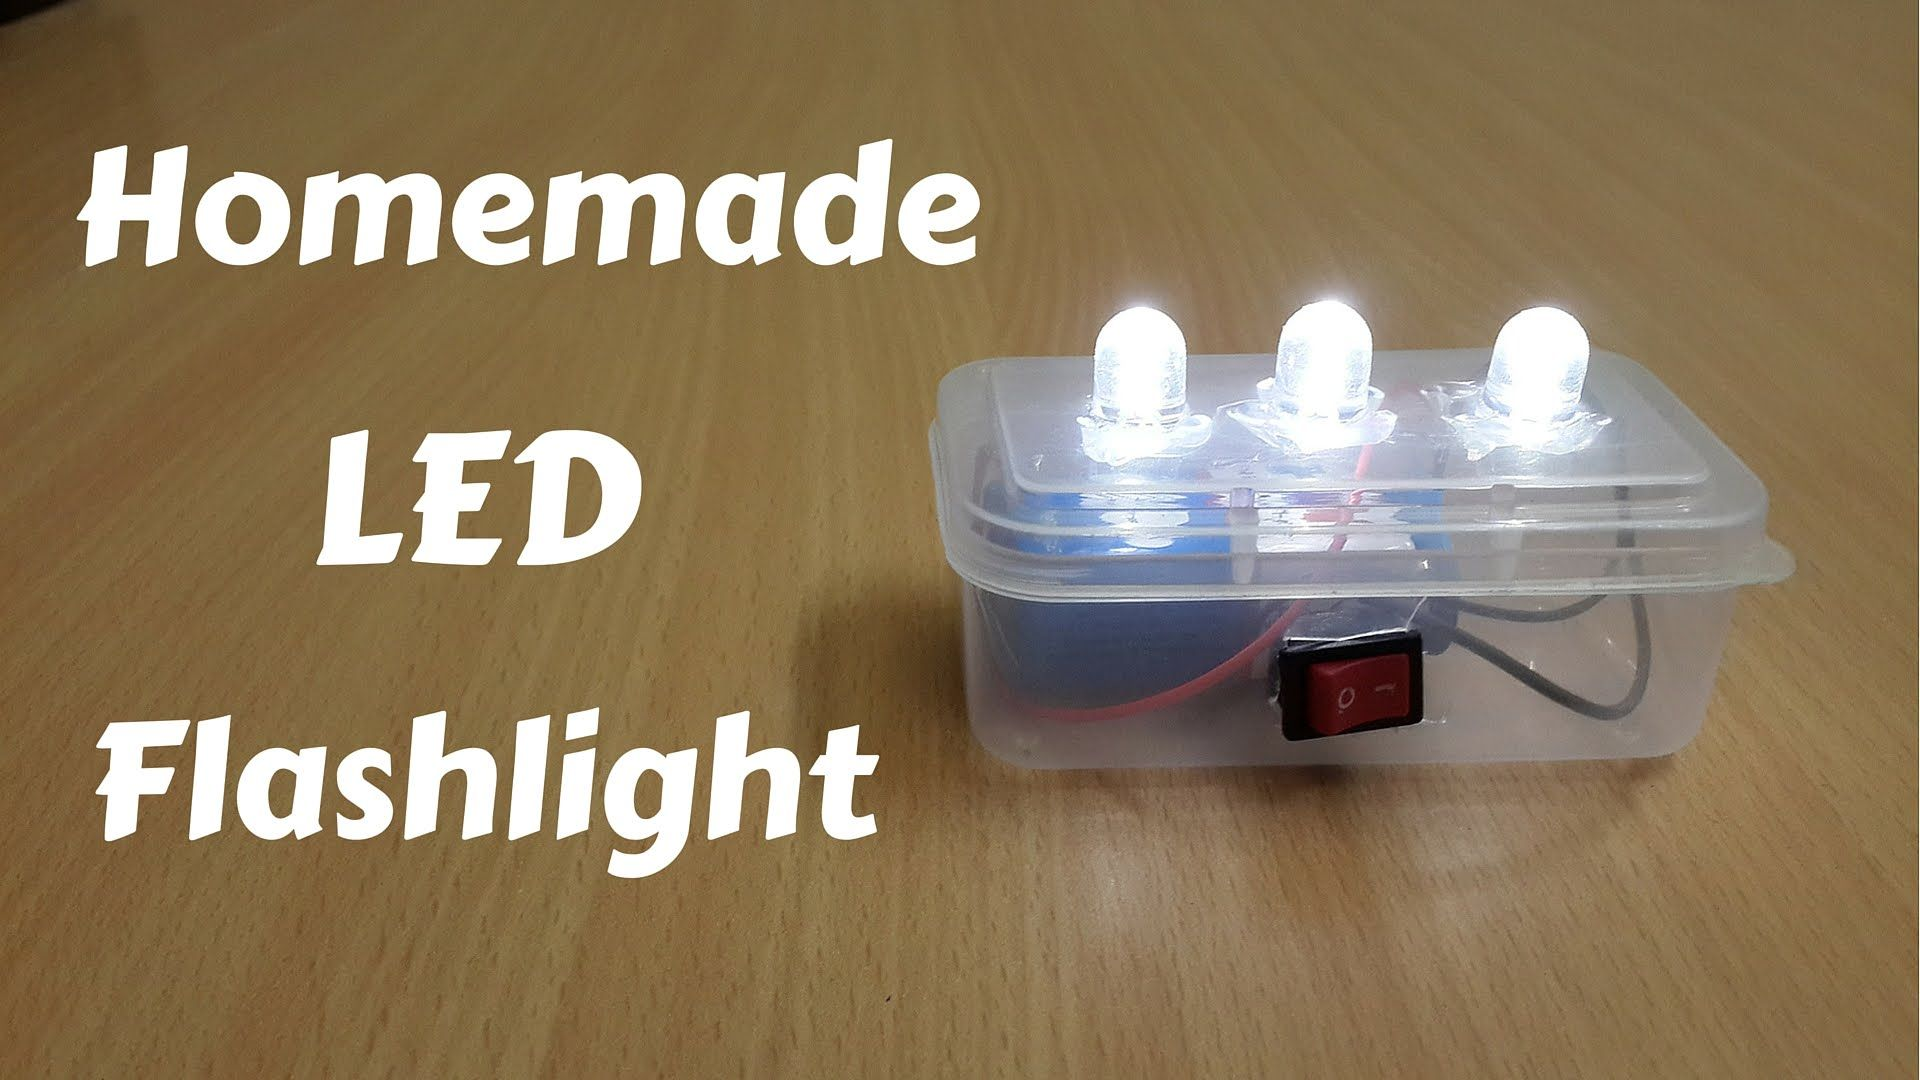 How To Make A Homemade Mini Led Flashlight Diy Diyflashlight Produce Candle Circuit Made From While Using 4 Aa Batteries